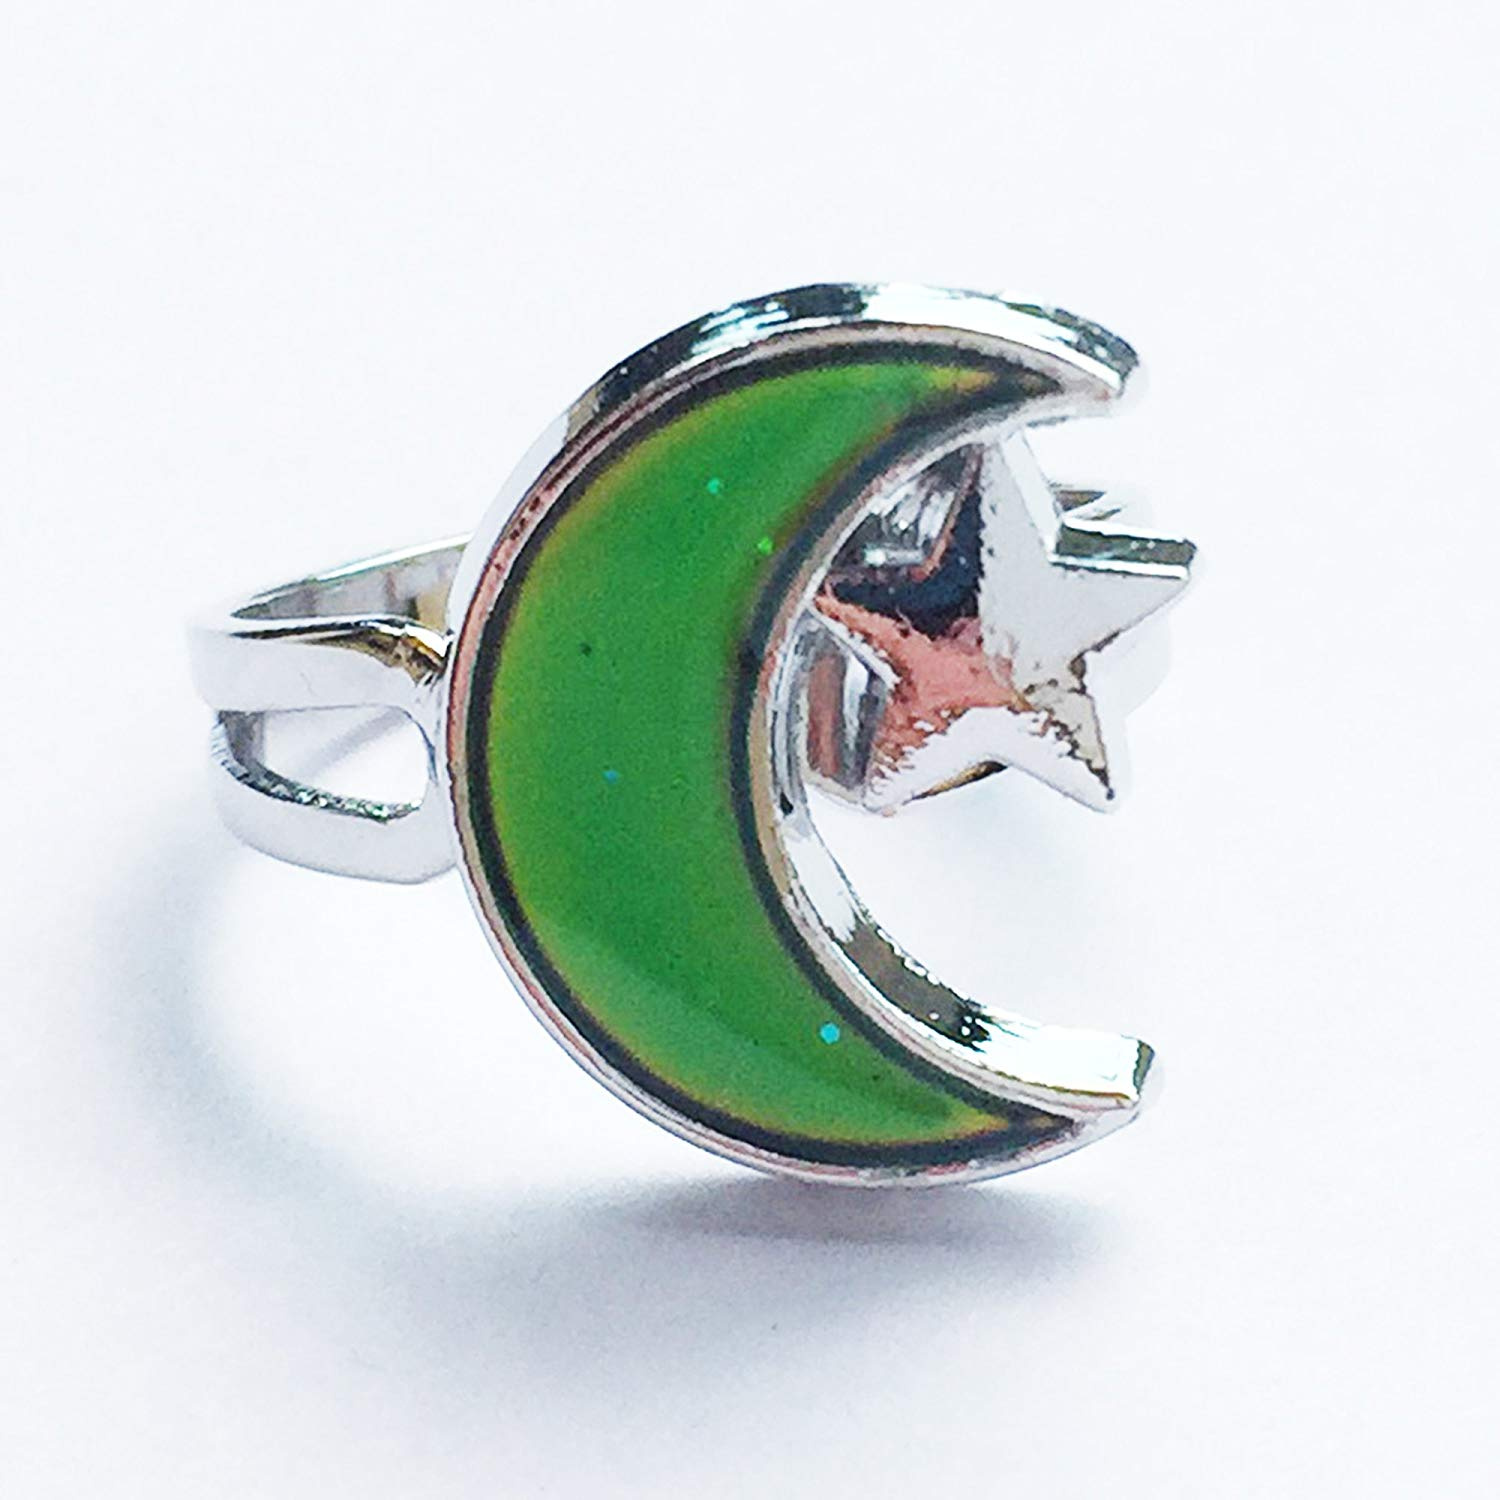 844a5e73 Crescent Moon Mood Ring - Get Instant Emotion Reading & Fun - Great Gift  for Kids